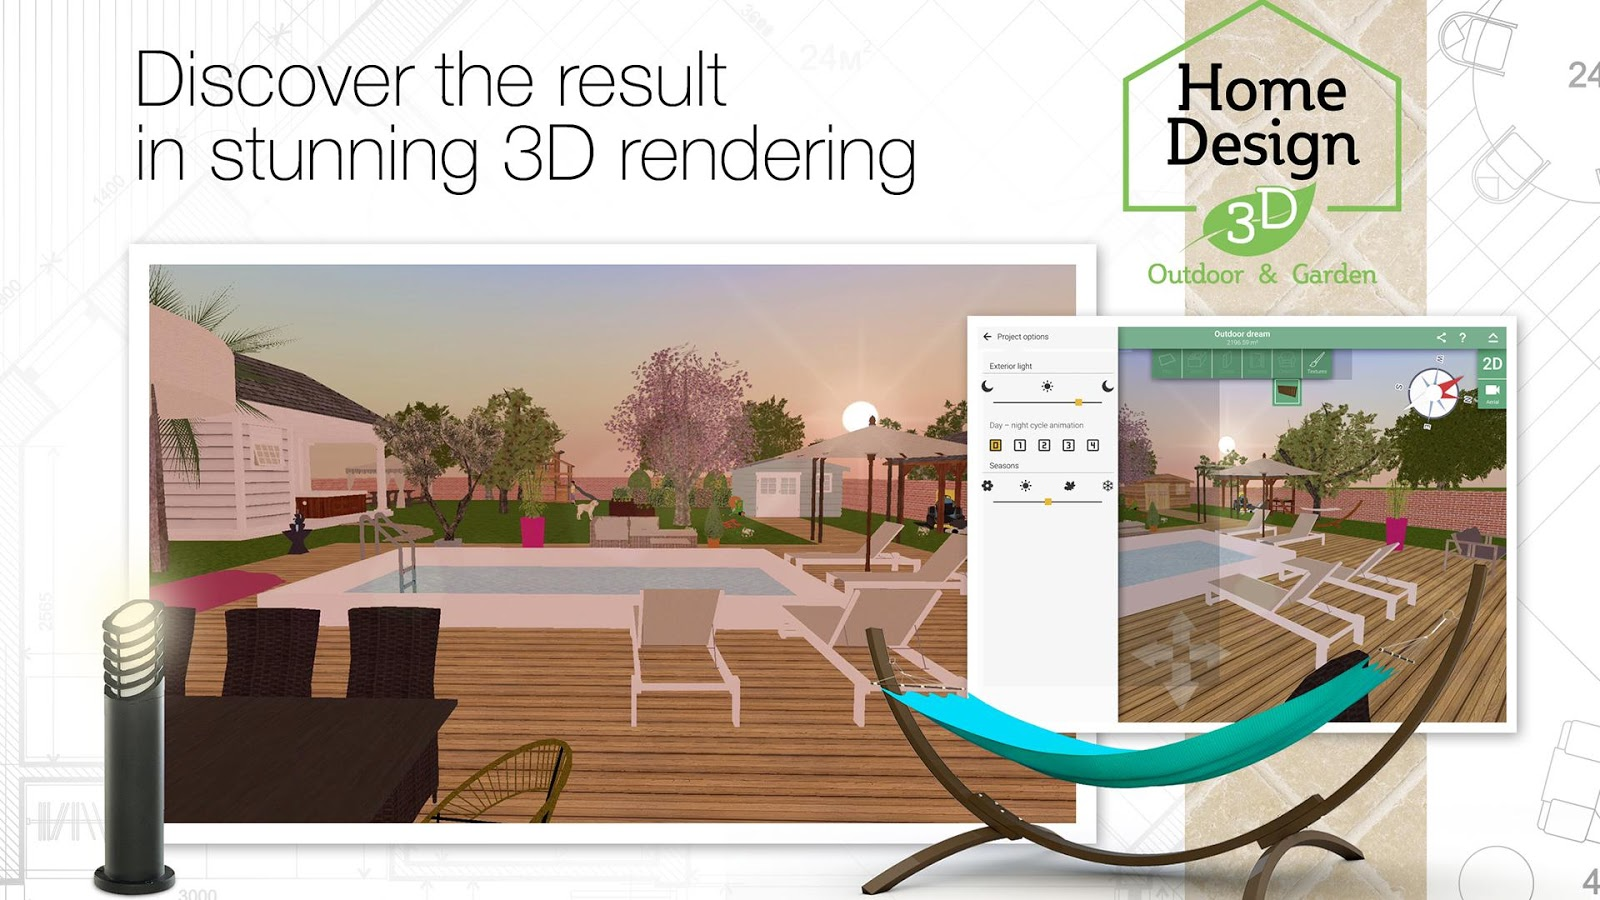 Design Garden App Design Home Design 3D Outdoorgarden  Android Apps On Google Play